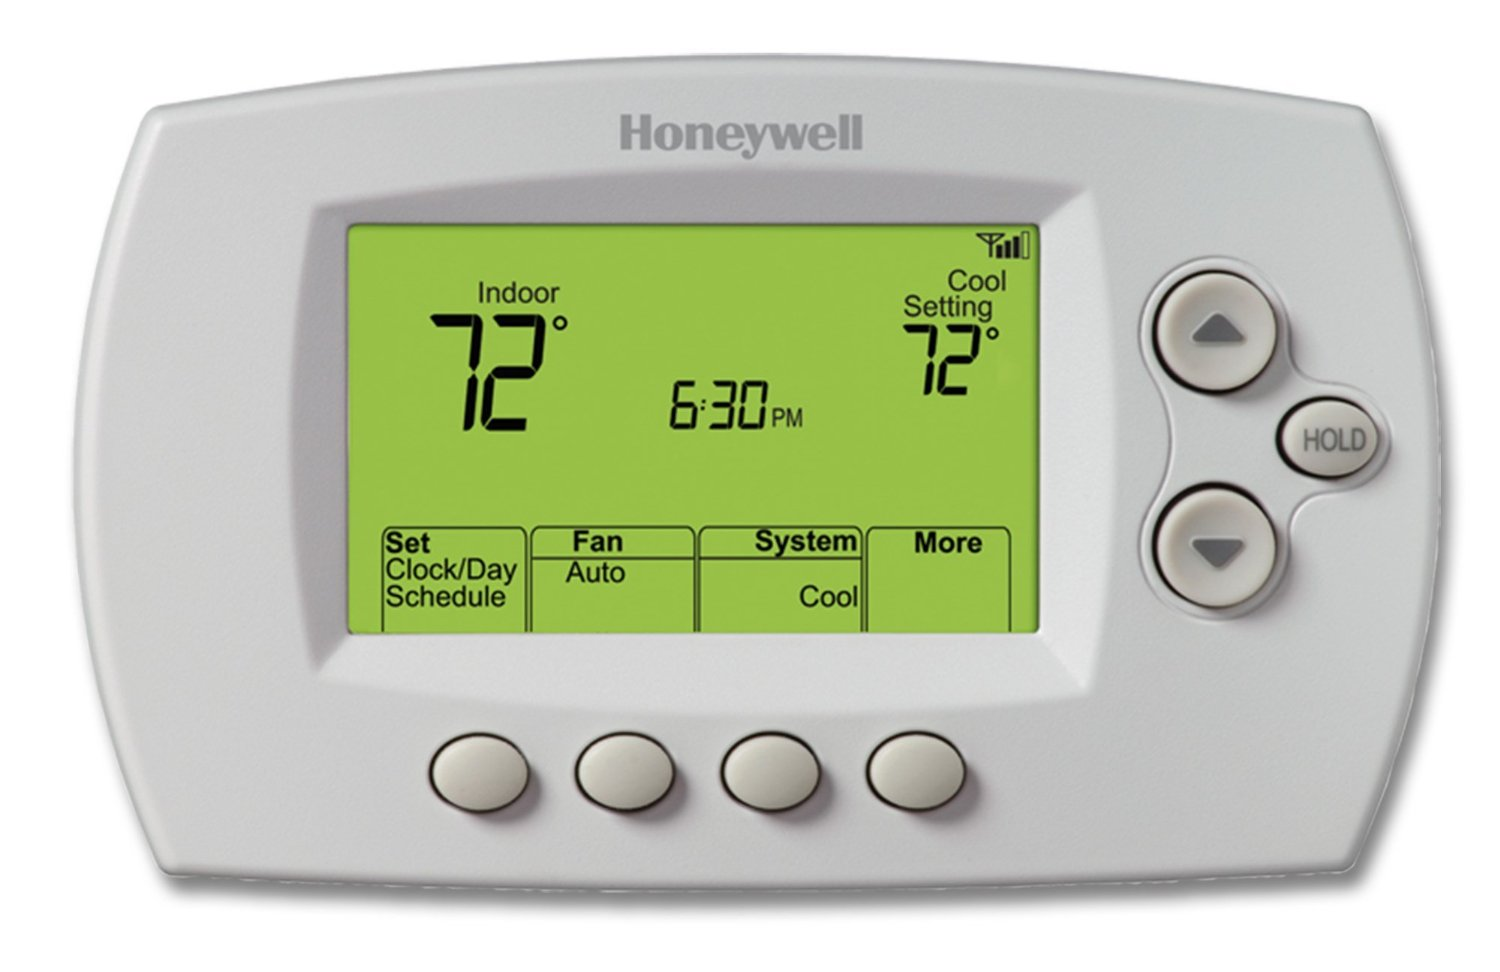 Honeywell Rth6580wf Thermostat Review